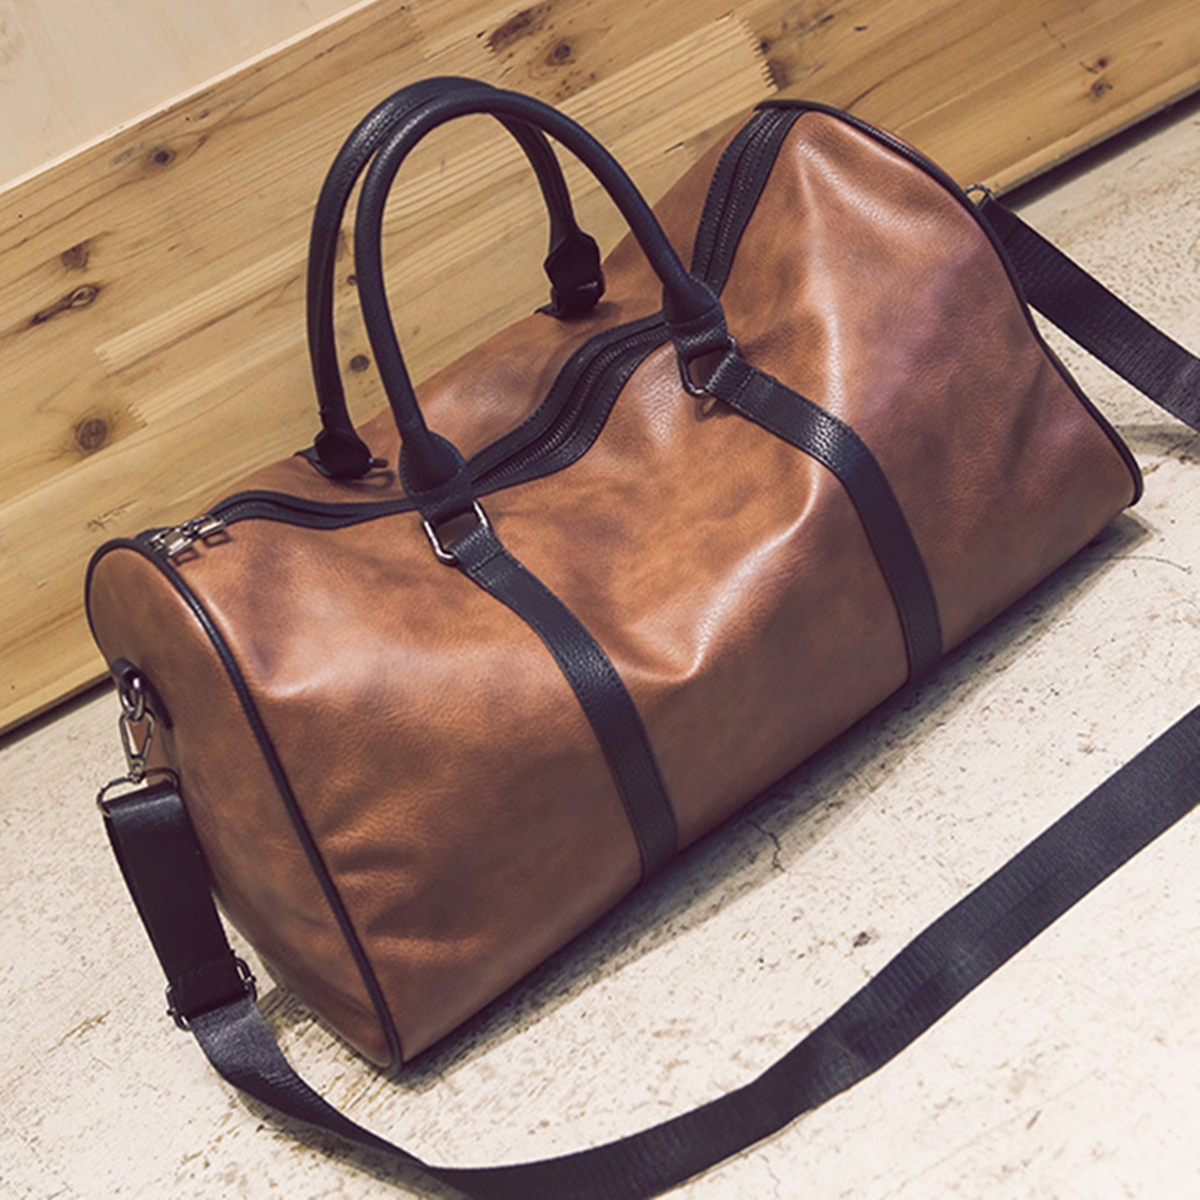 Gym Bag Jalandhar: Leather Outdoor Large Gym Duffel Bag Travel Weekend